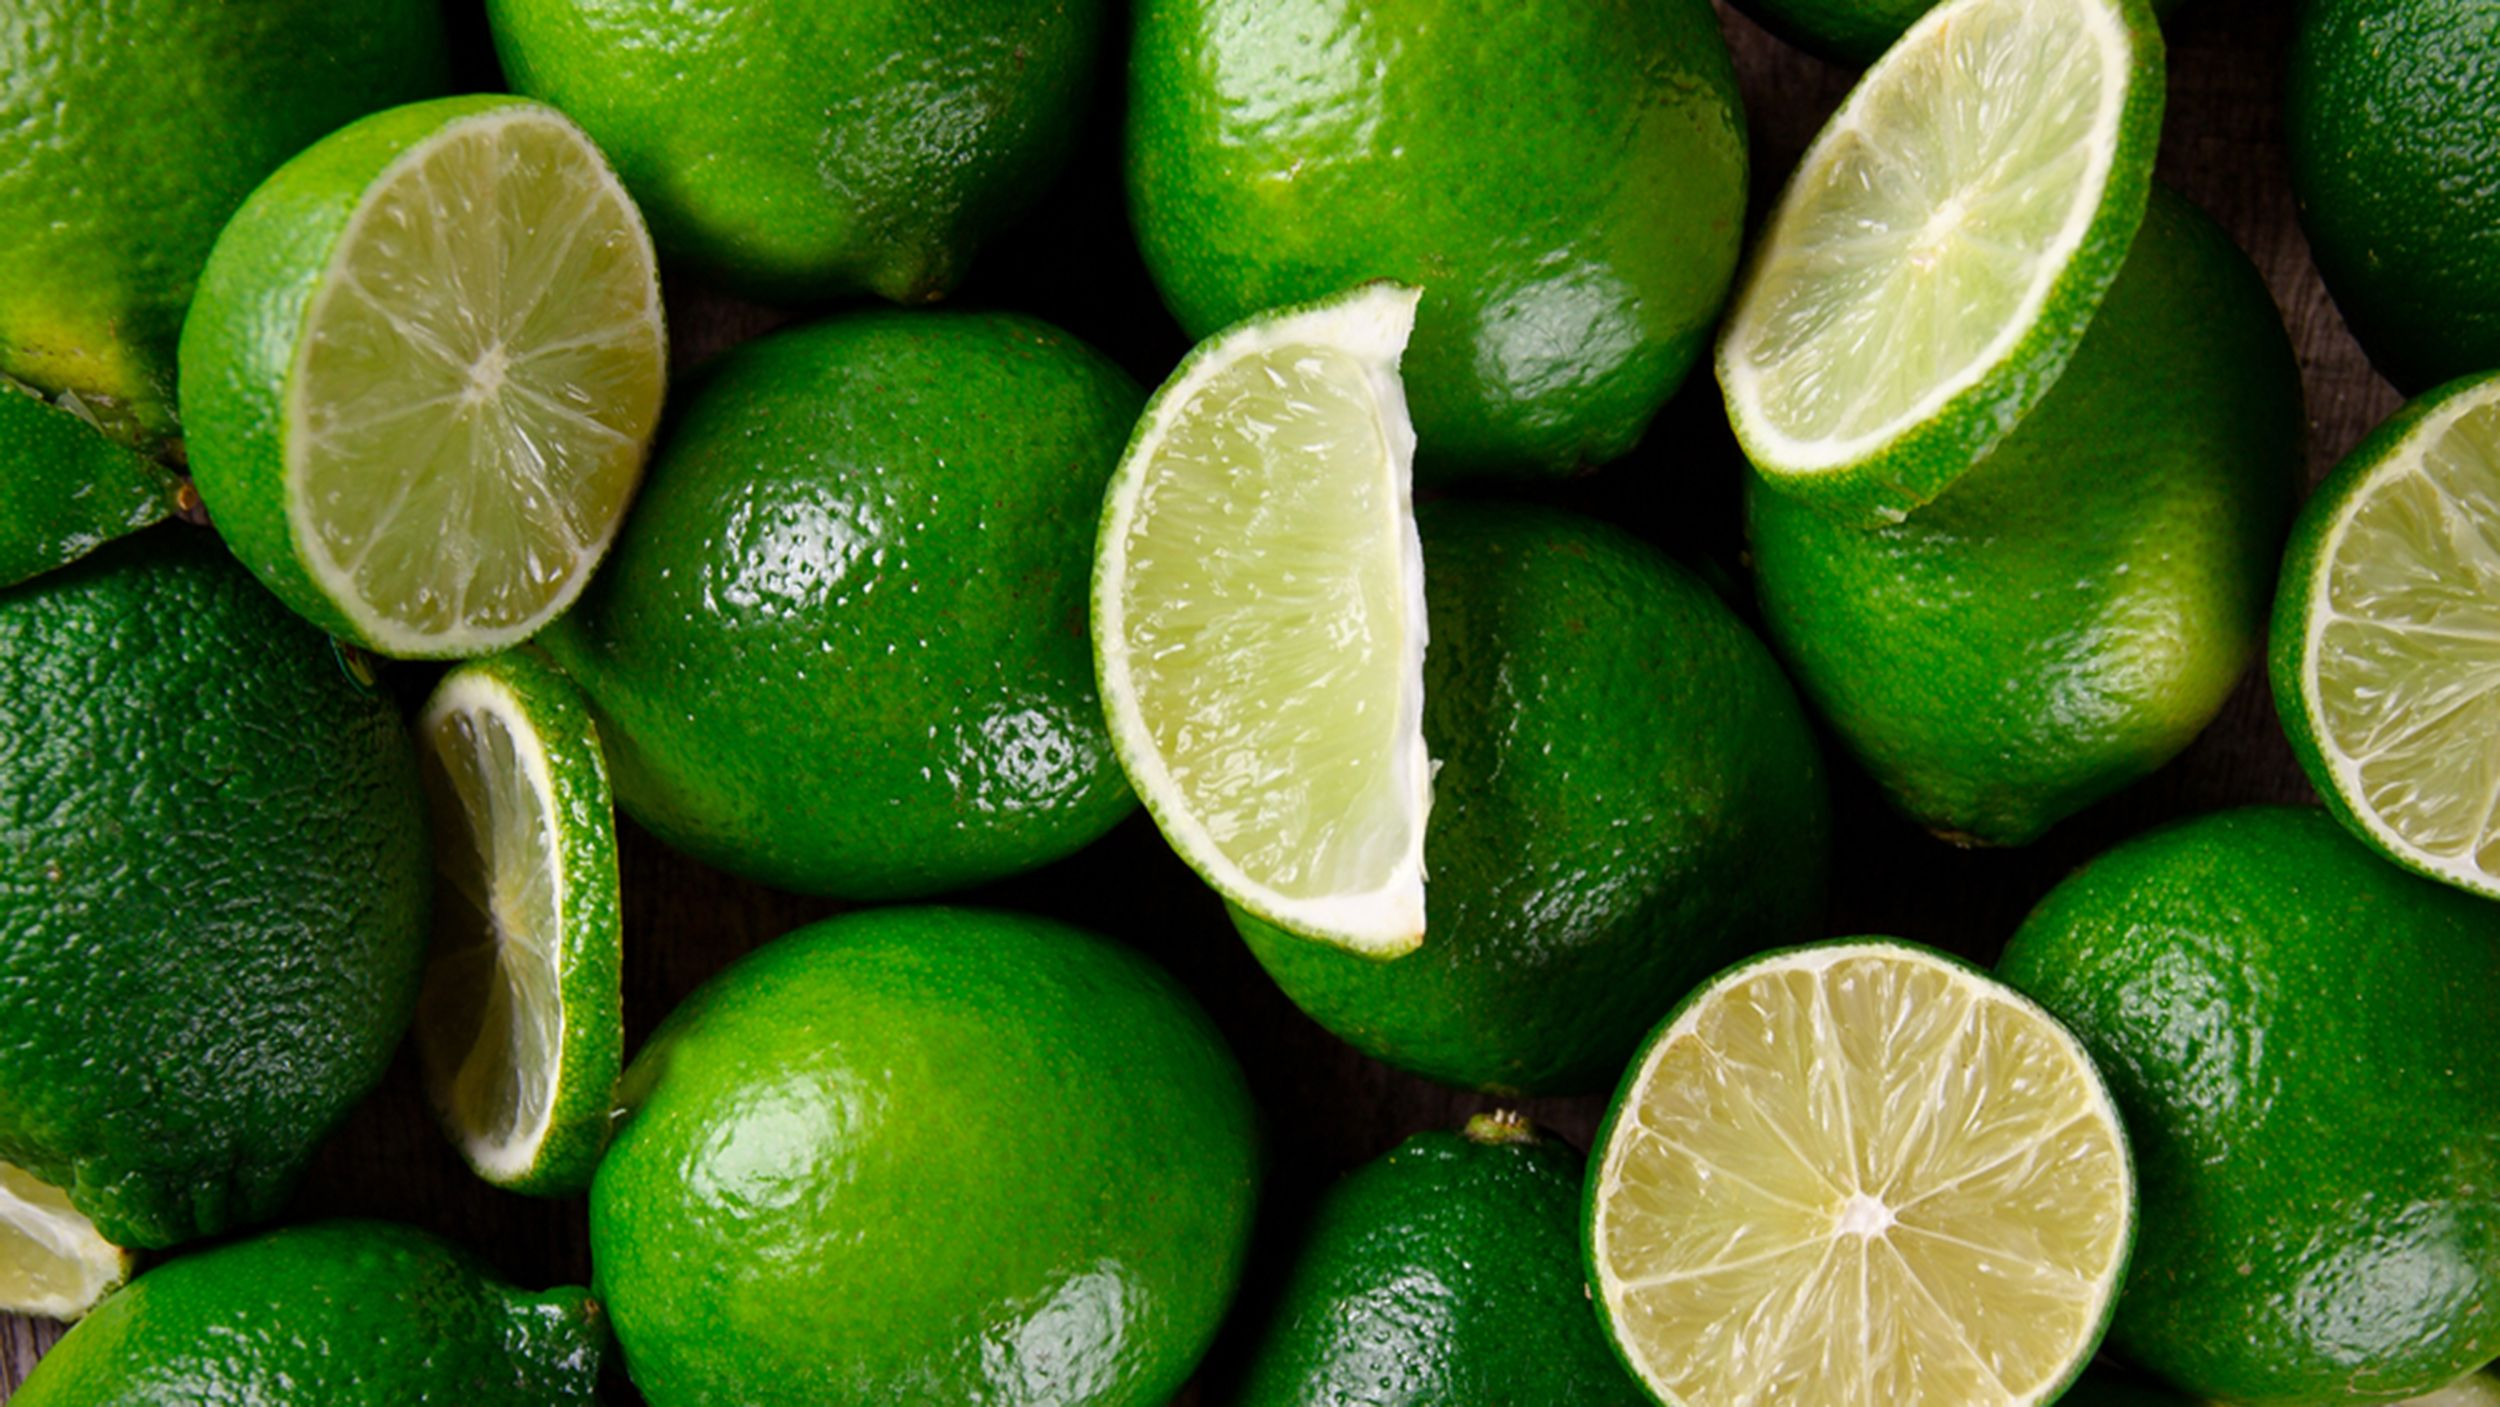 7 surprising household uses for limes